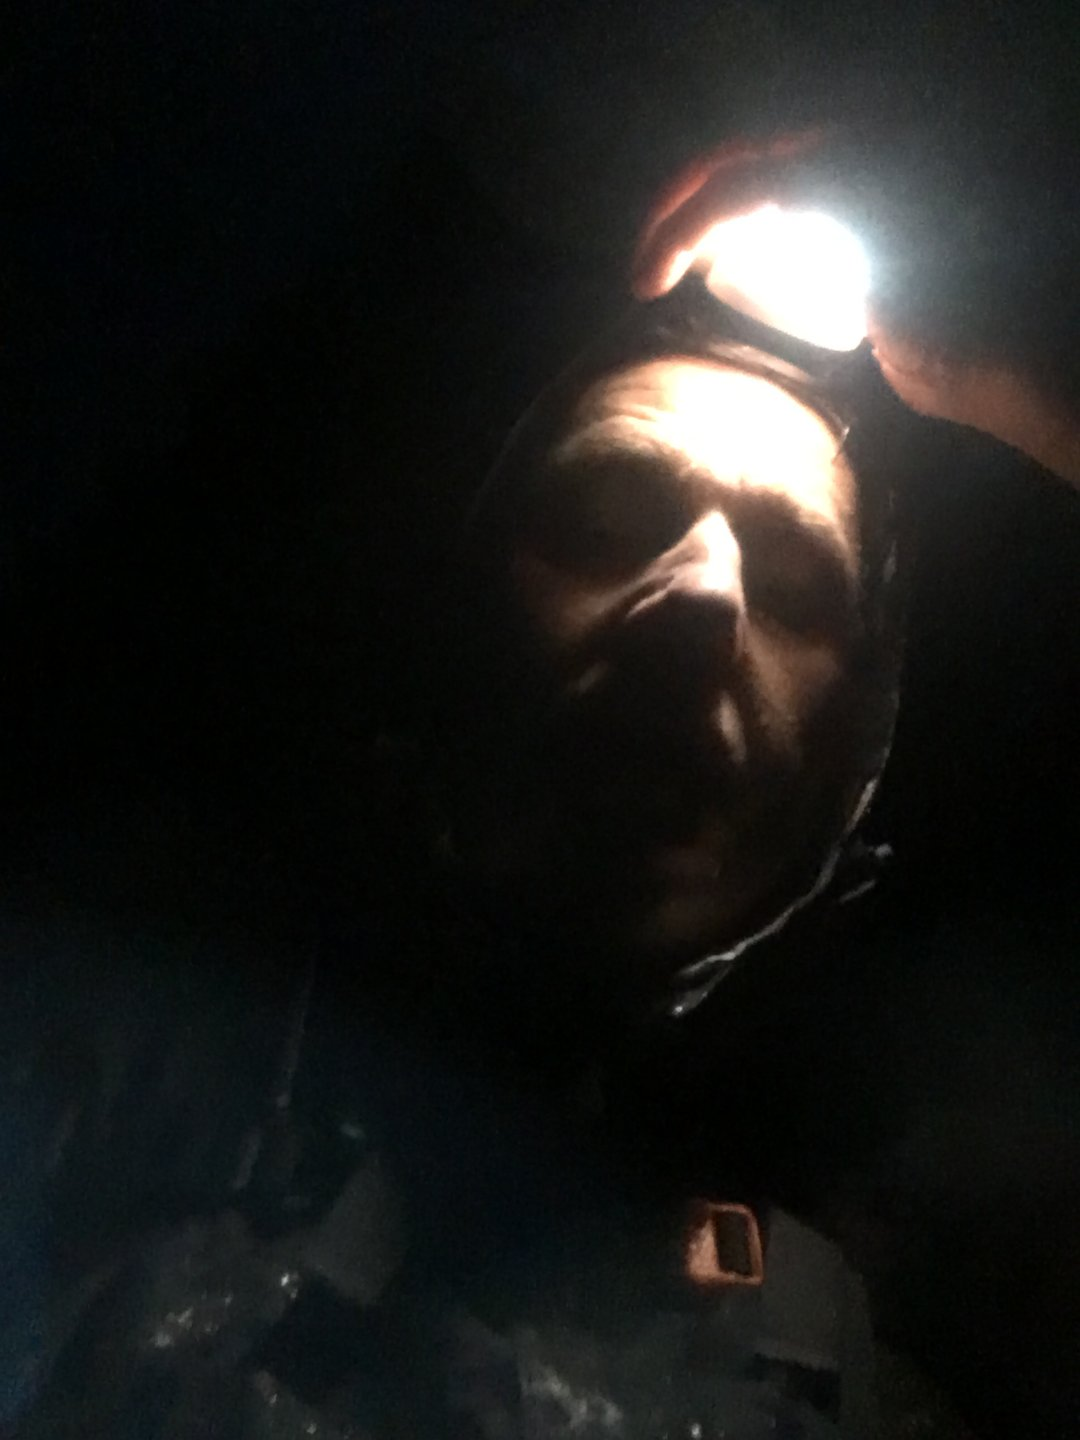 One man and his headtorch